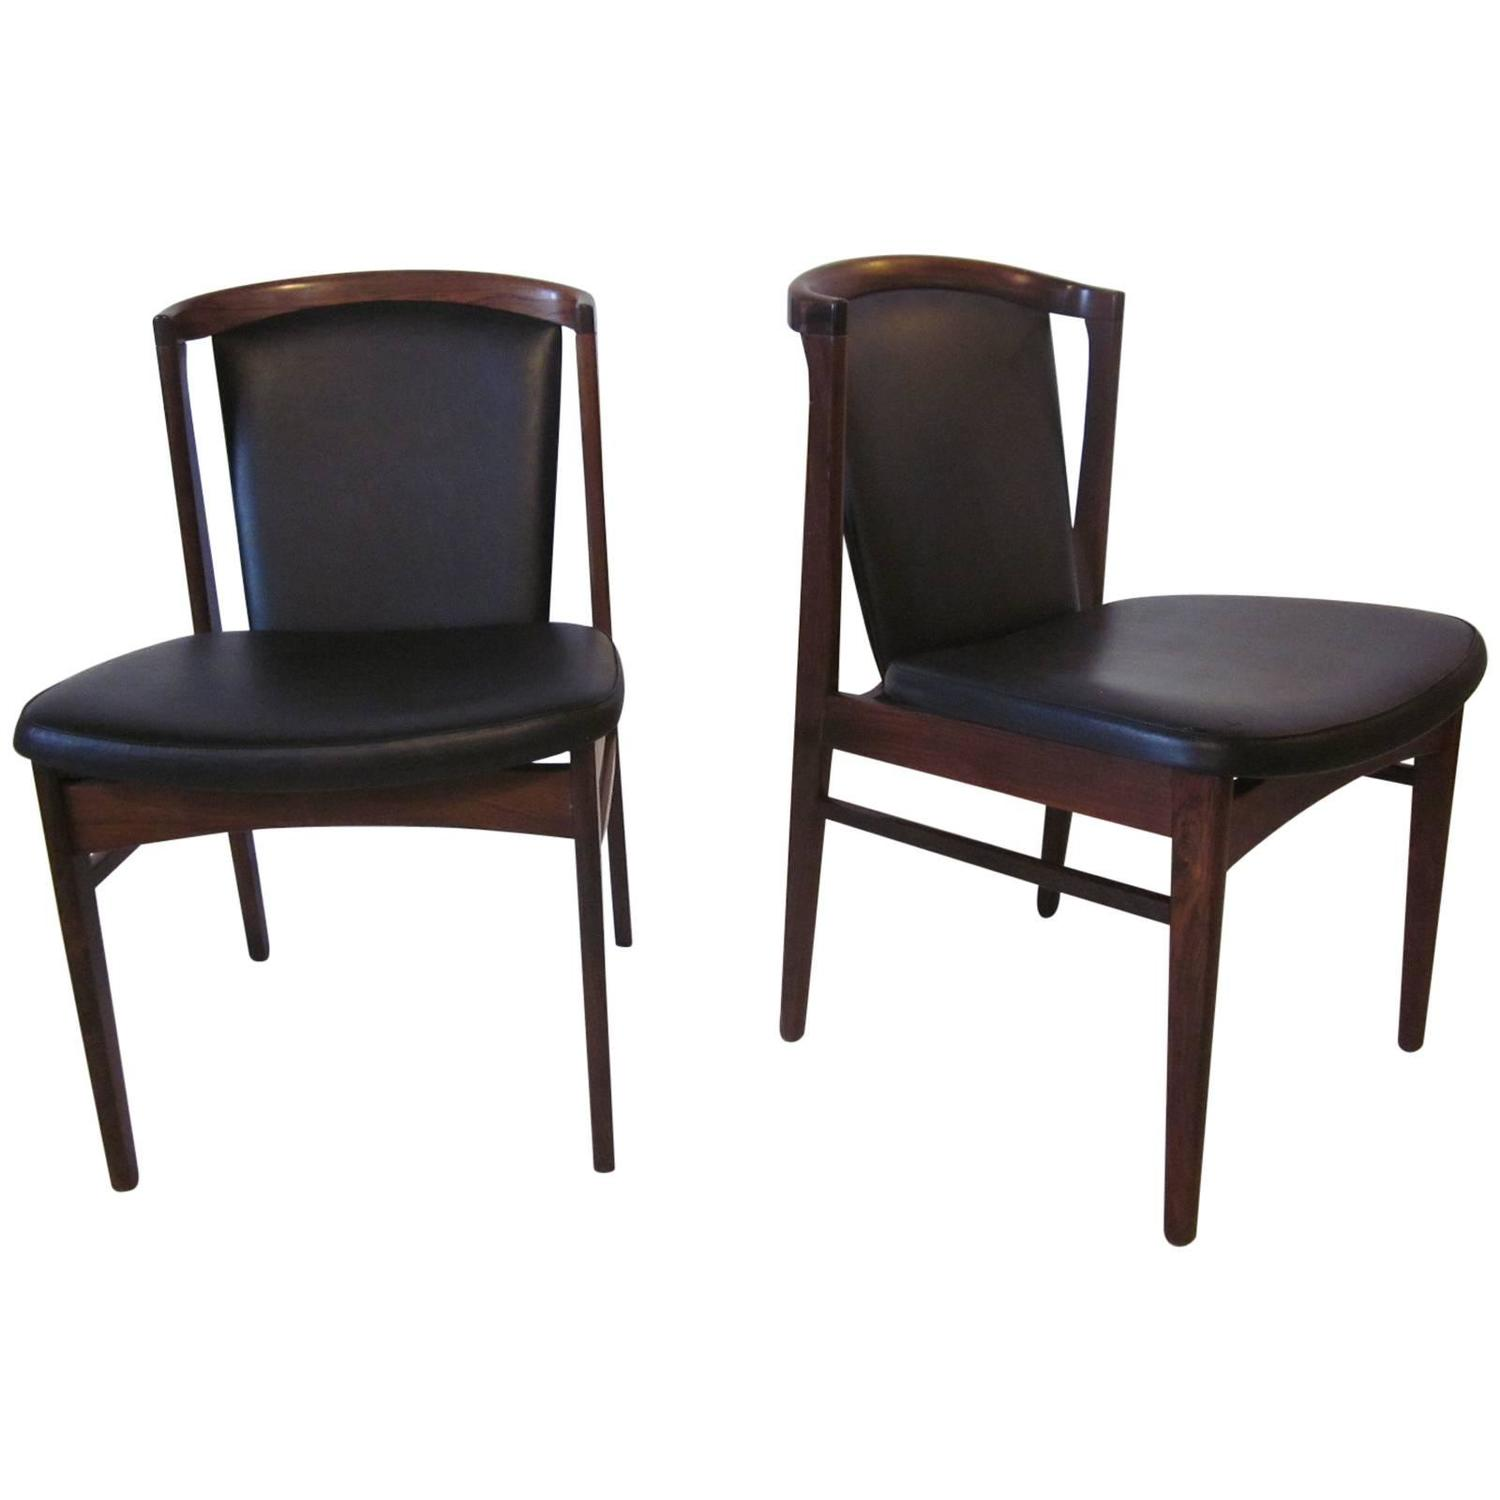 Eric Buck Danish Rosewood Chairs For Erik Christensen For Sale At 1stdibs